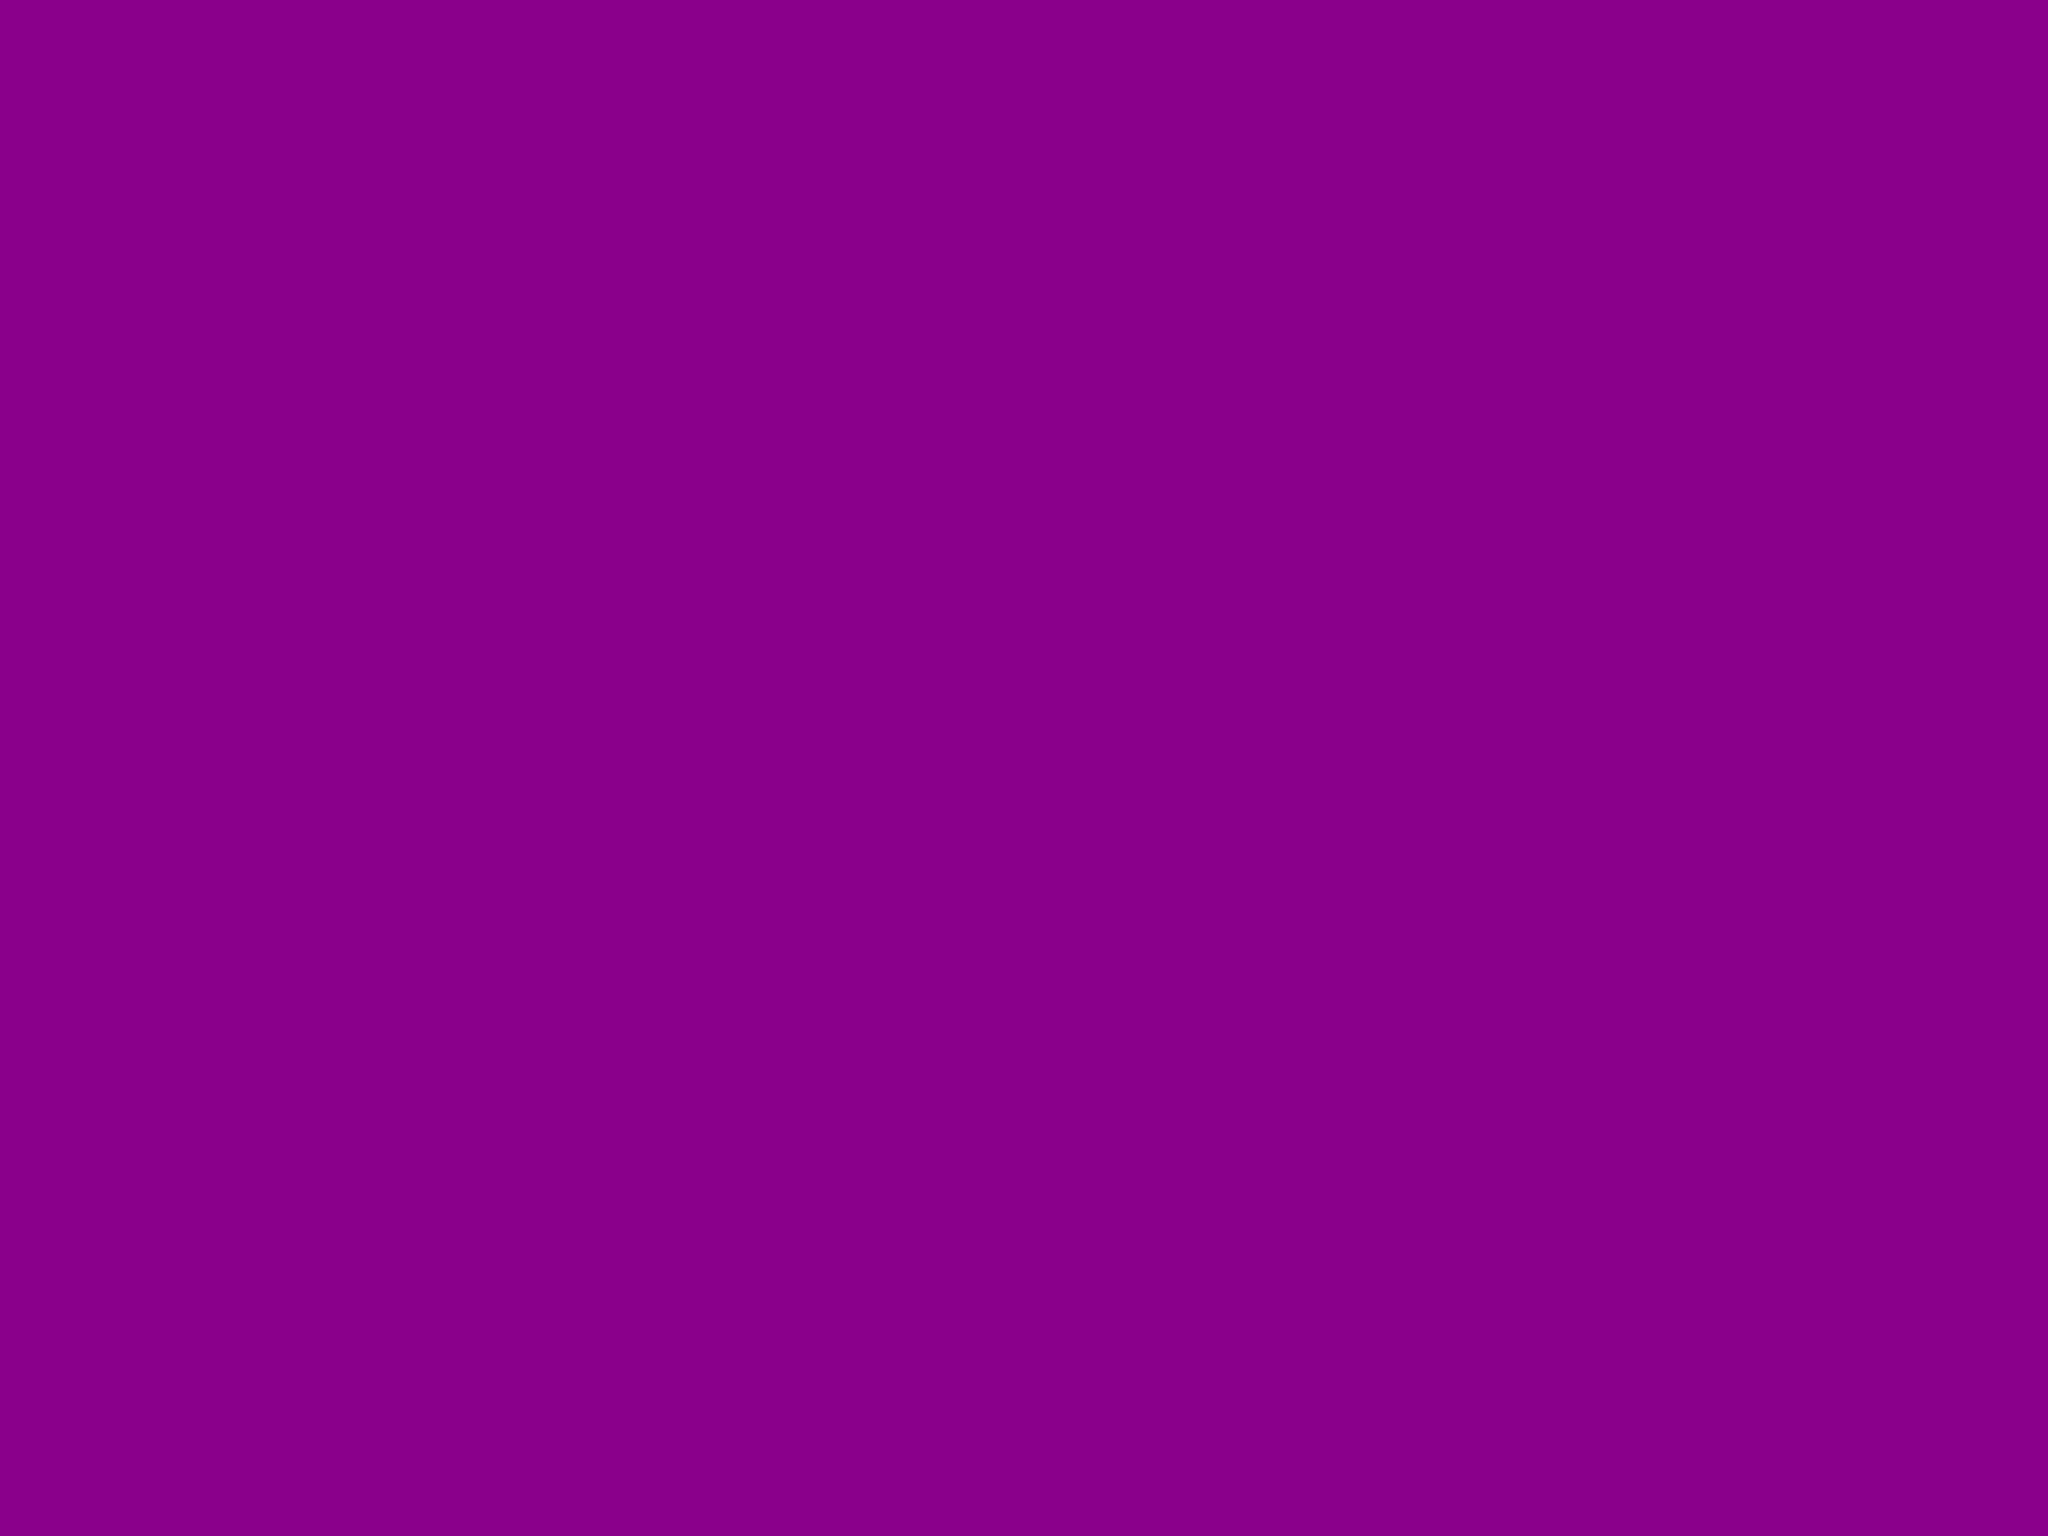 2048x1536 Dark Magenta Solid Color Background